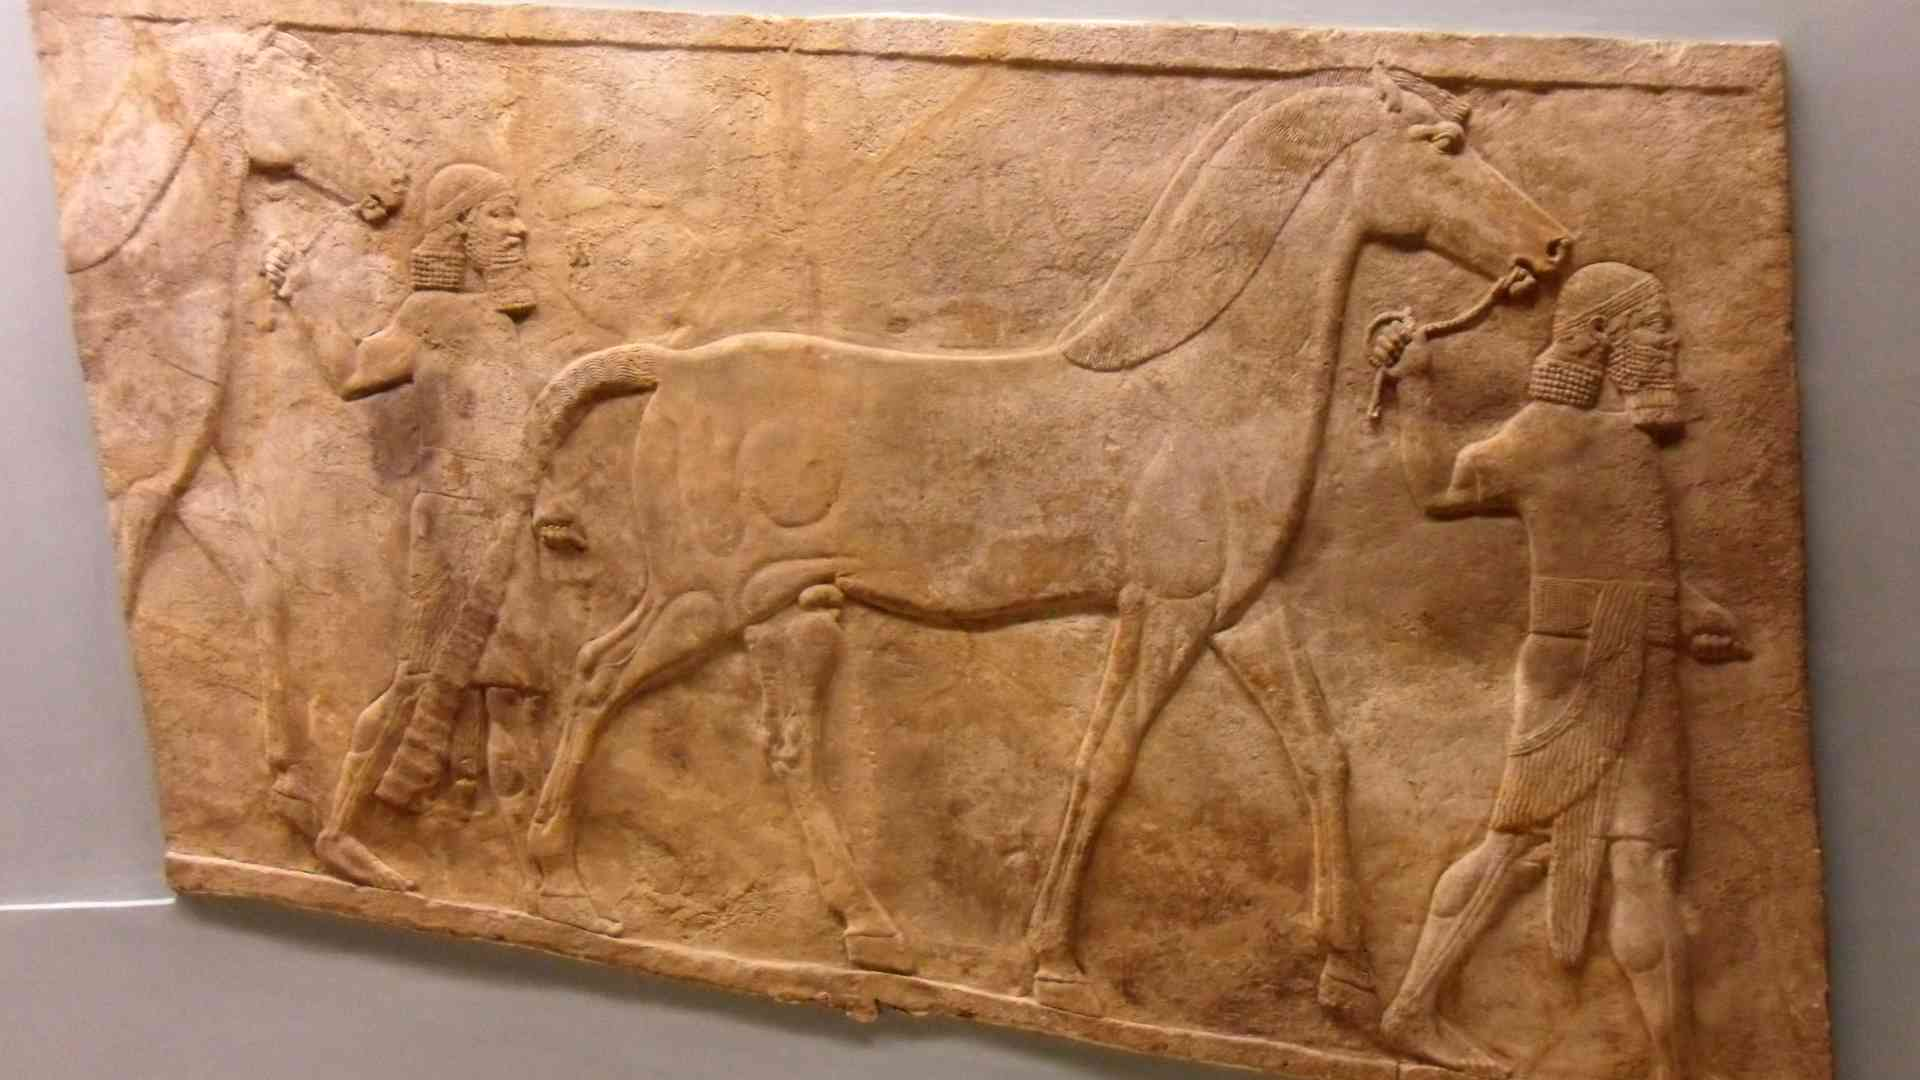 Chevaux quittant le Palais de Ninive - British Museum - Photo P. Vauclair